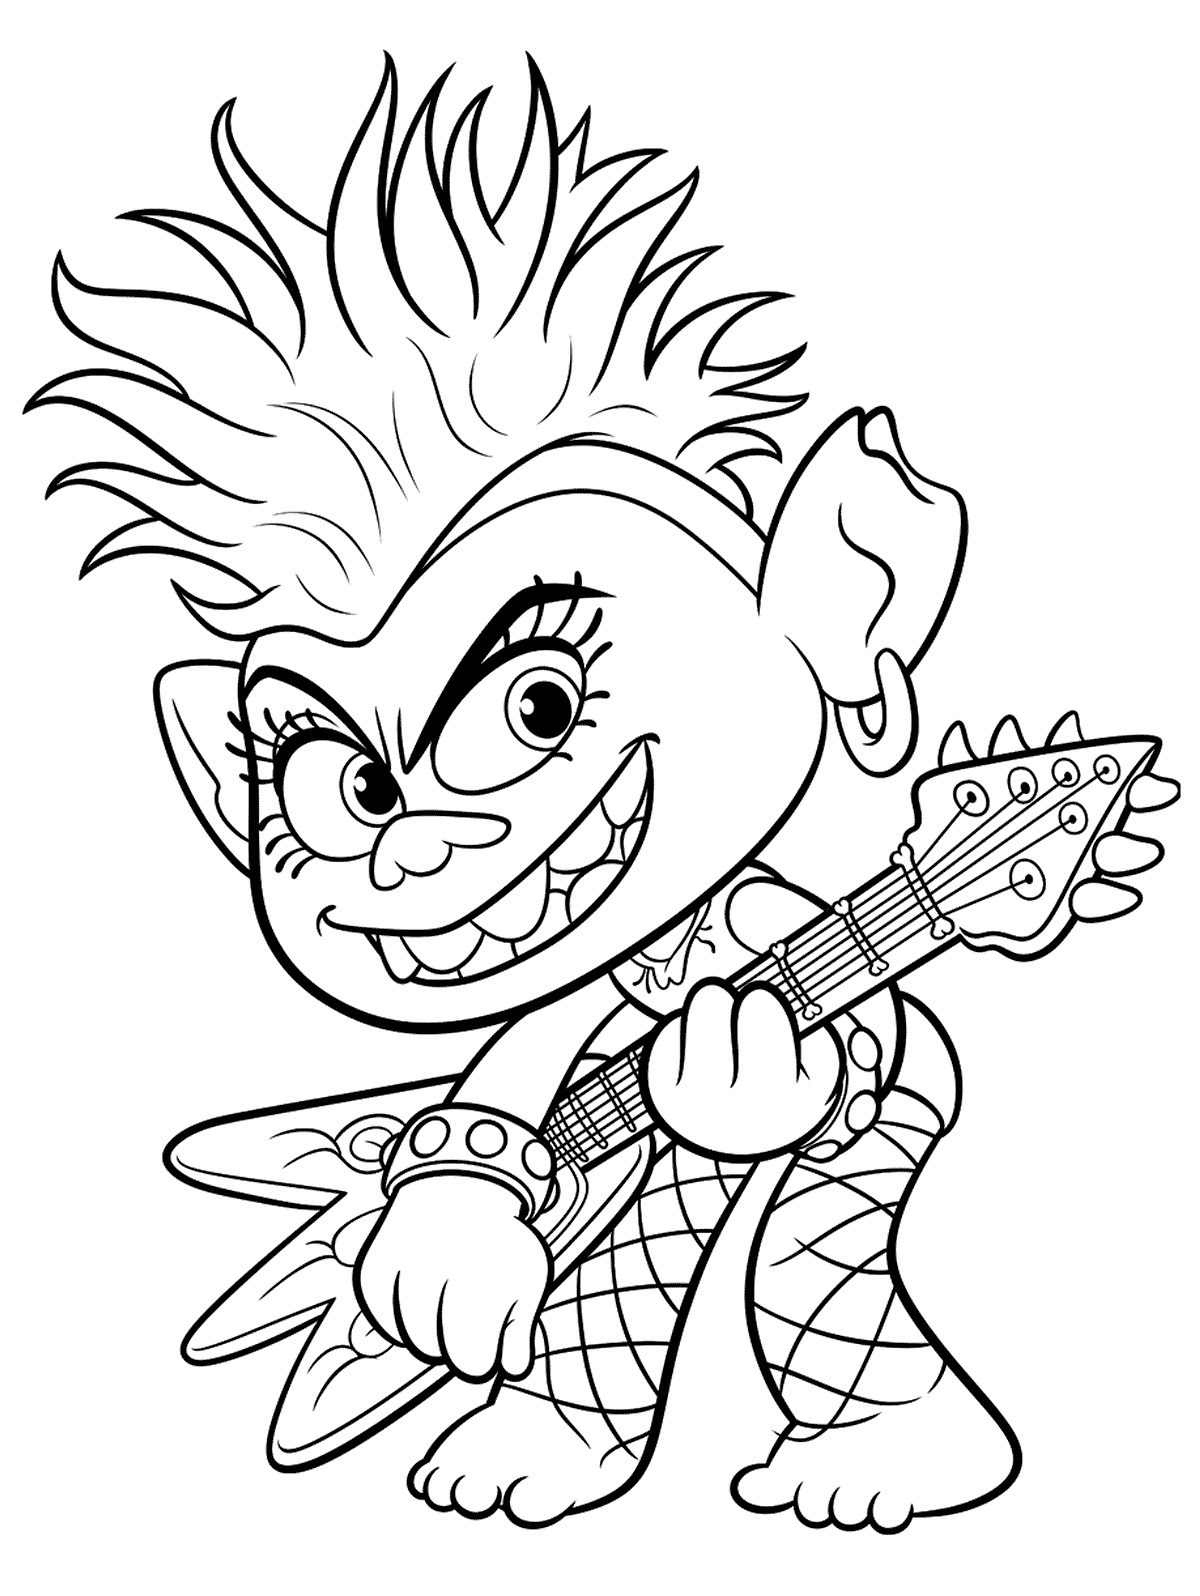 Trolls World Tour Coloring Pages. Print for Free New Trolls